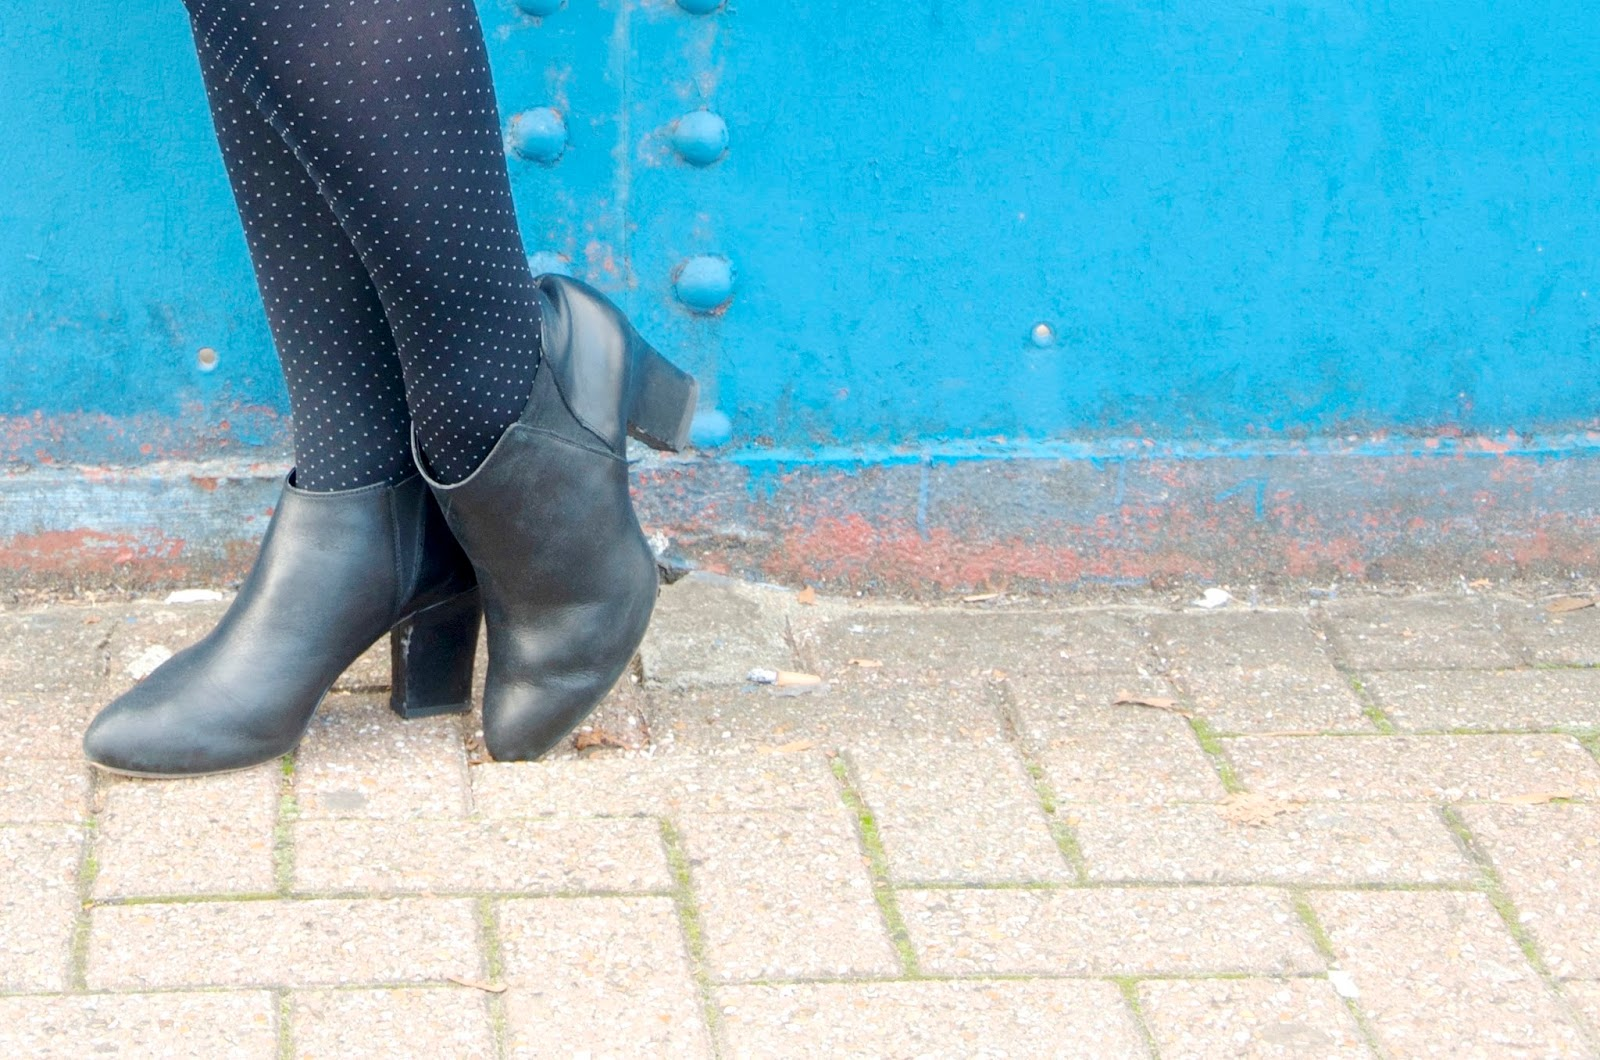 Black tights with grey dots and black ankle boots